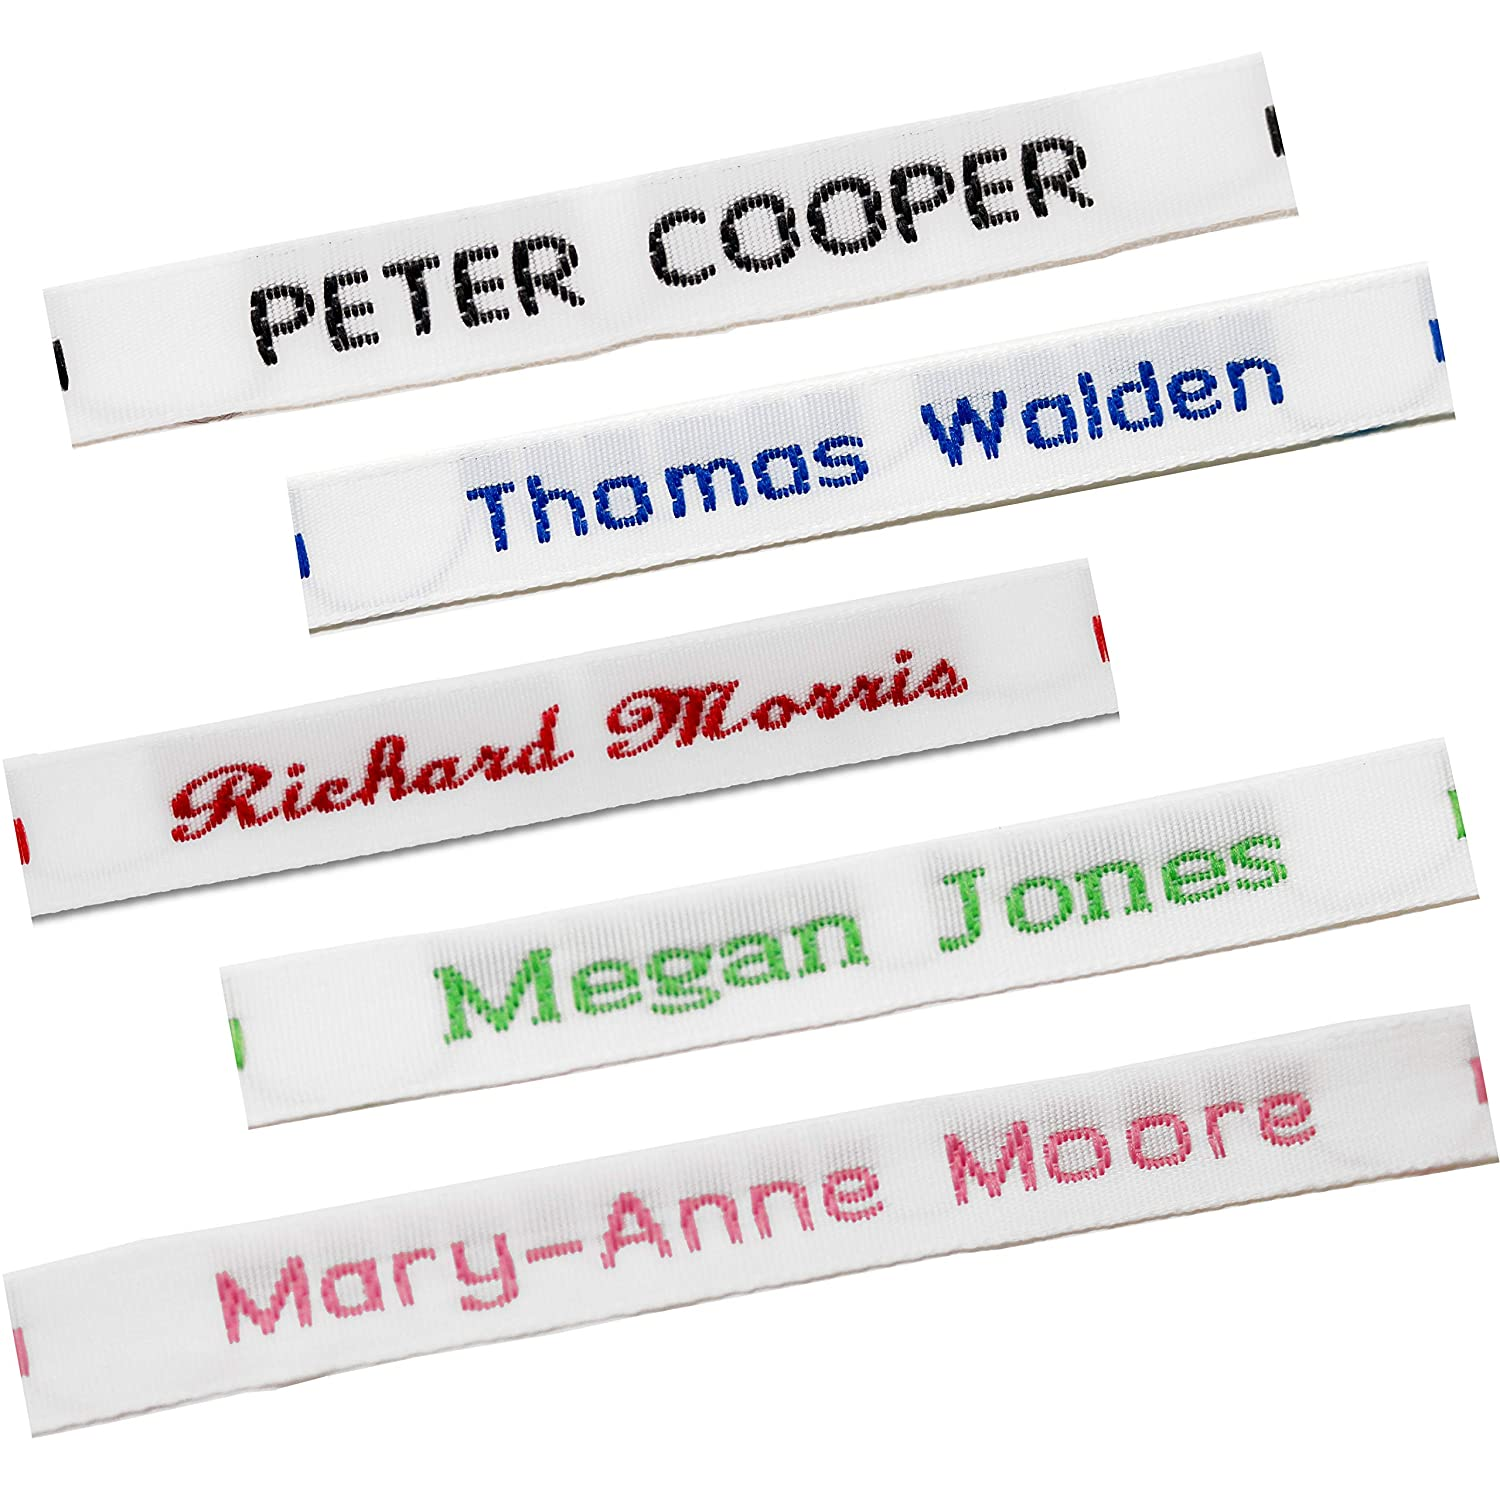 60 Printed Iron-On Name Labels Personalised School Quality Tape Tags for Clothes